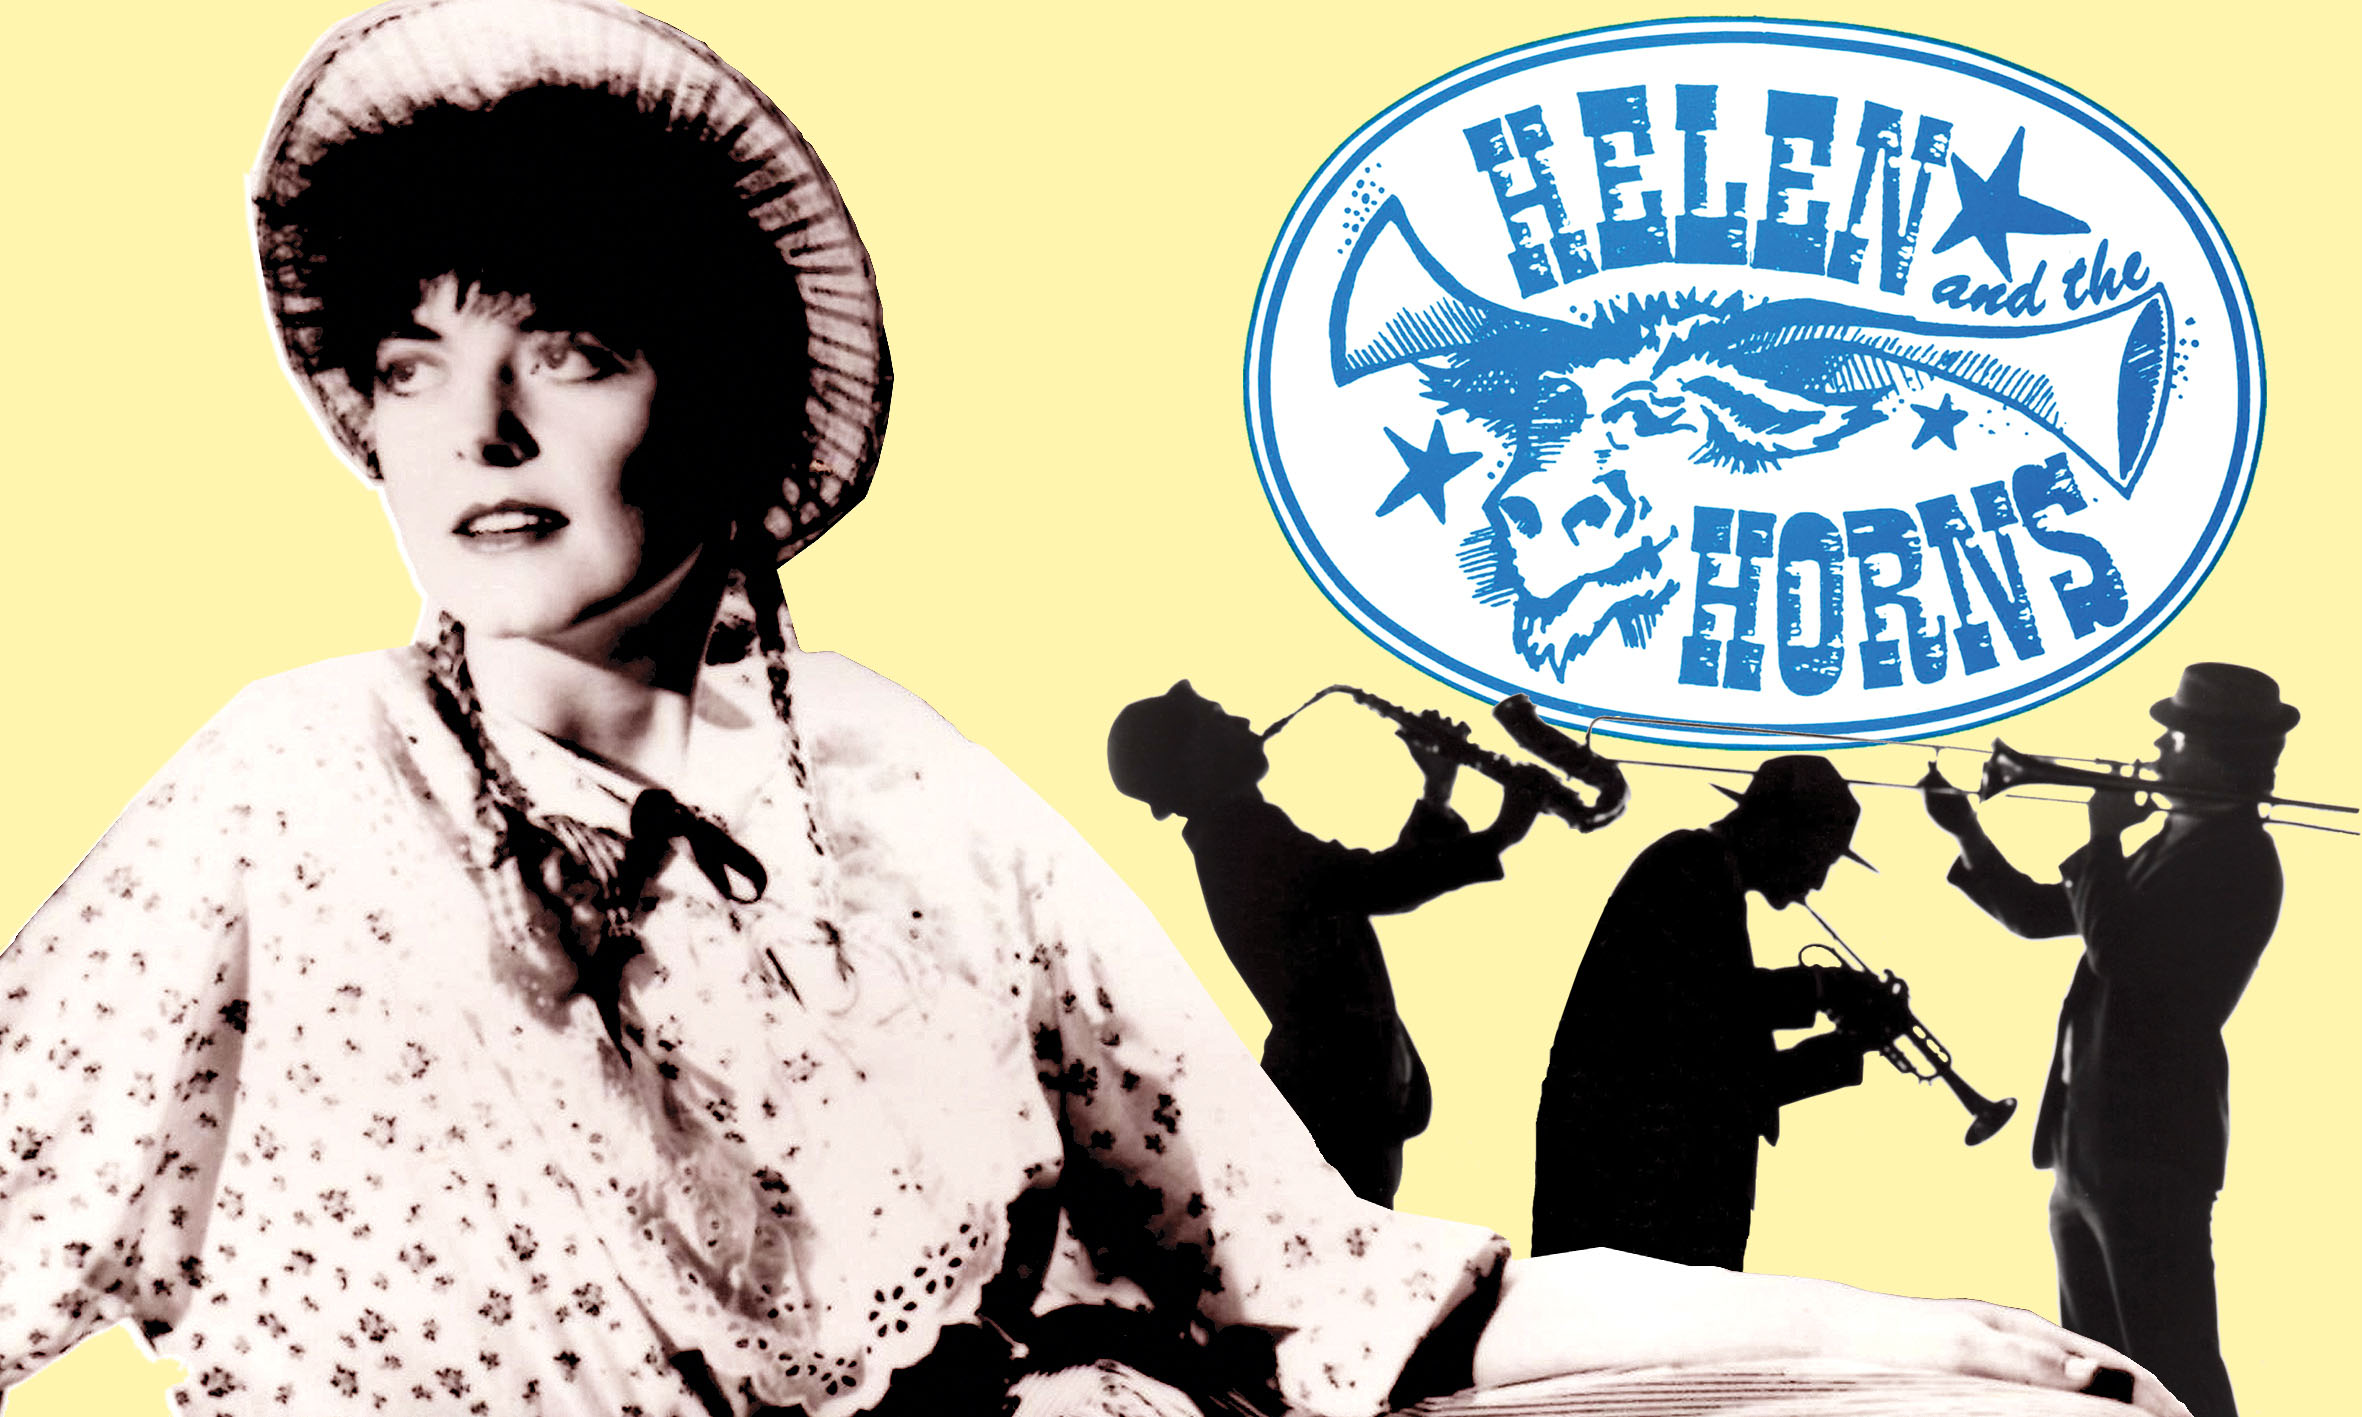 HelenAndTheHorns - Website 2013